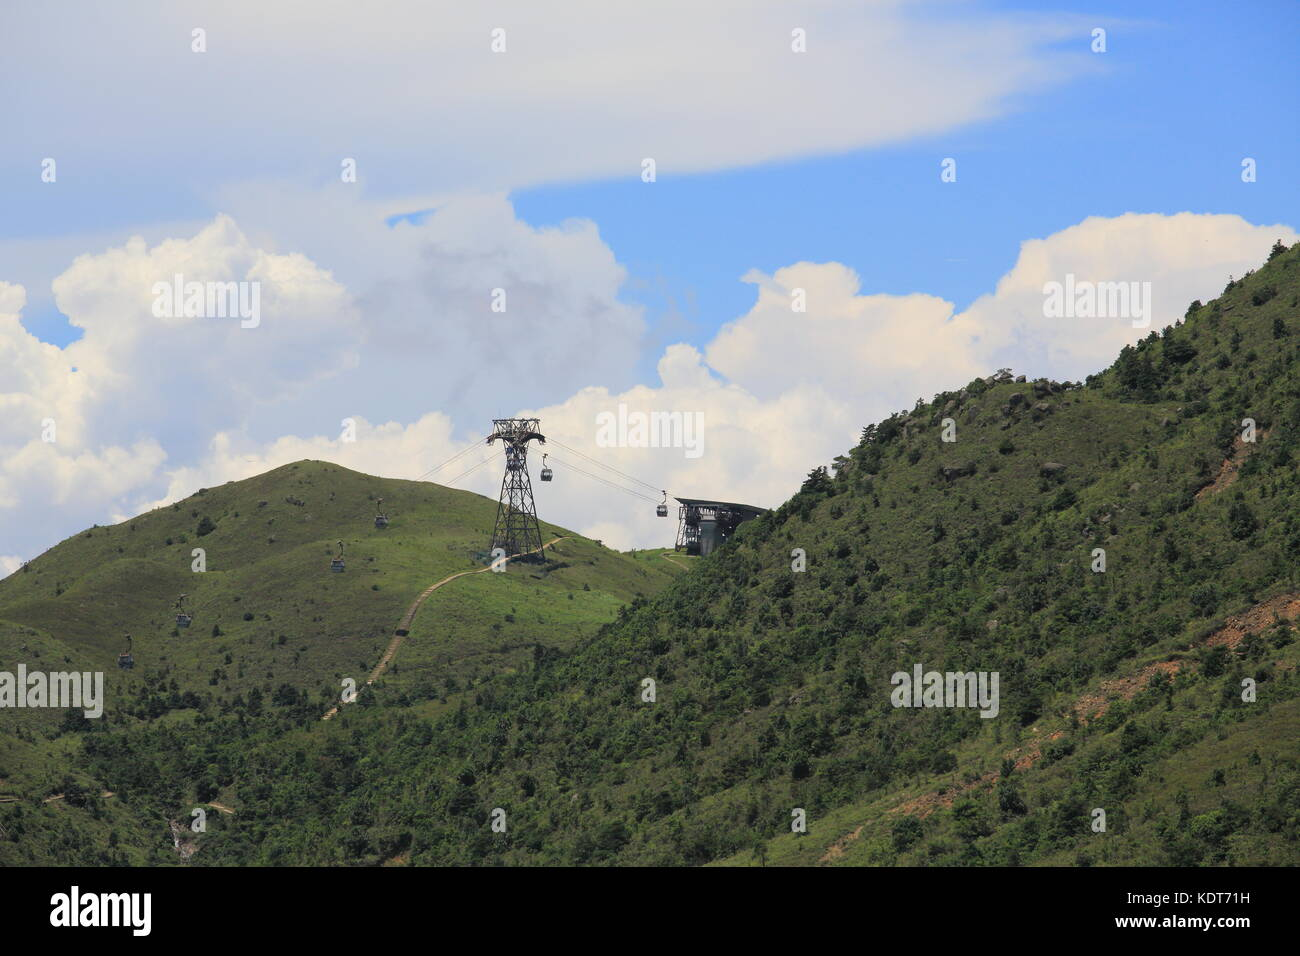 Ngong Ping 360 cable car tower with the cloudy landscape from Lantau Island in beautiful summer landscape - Stock Image